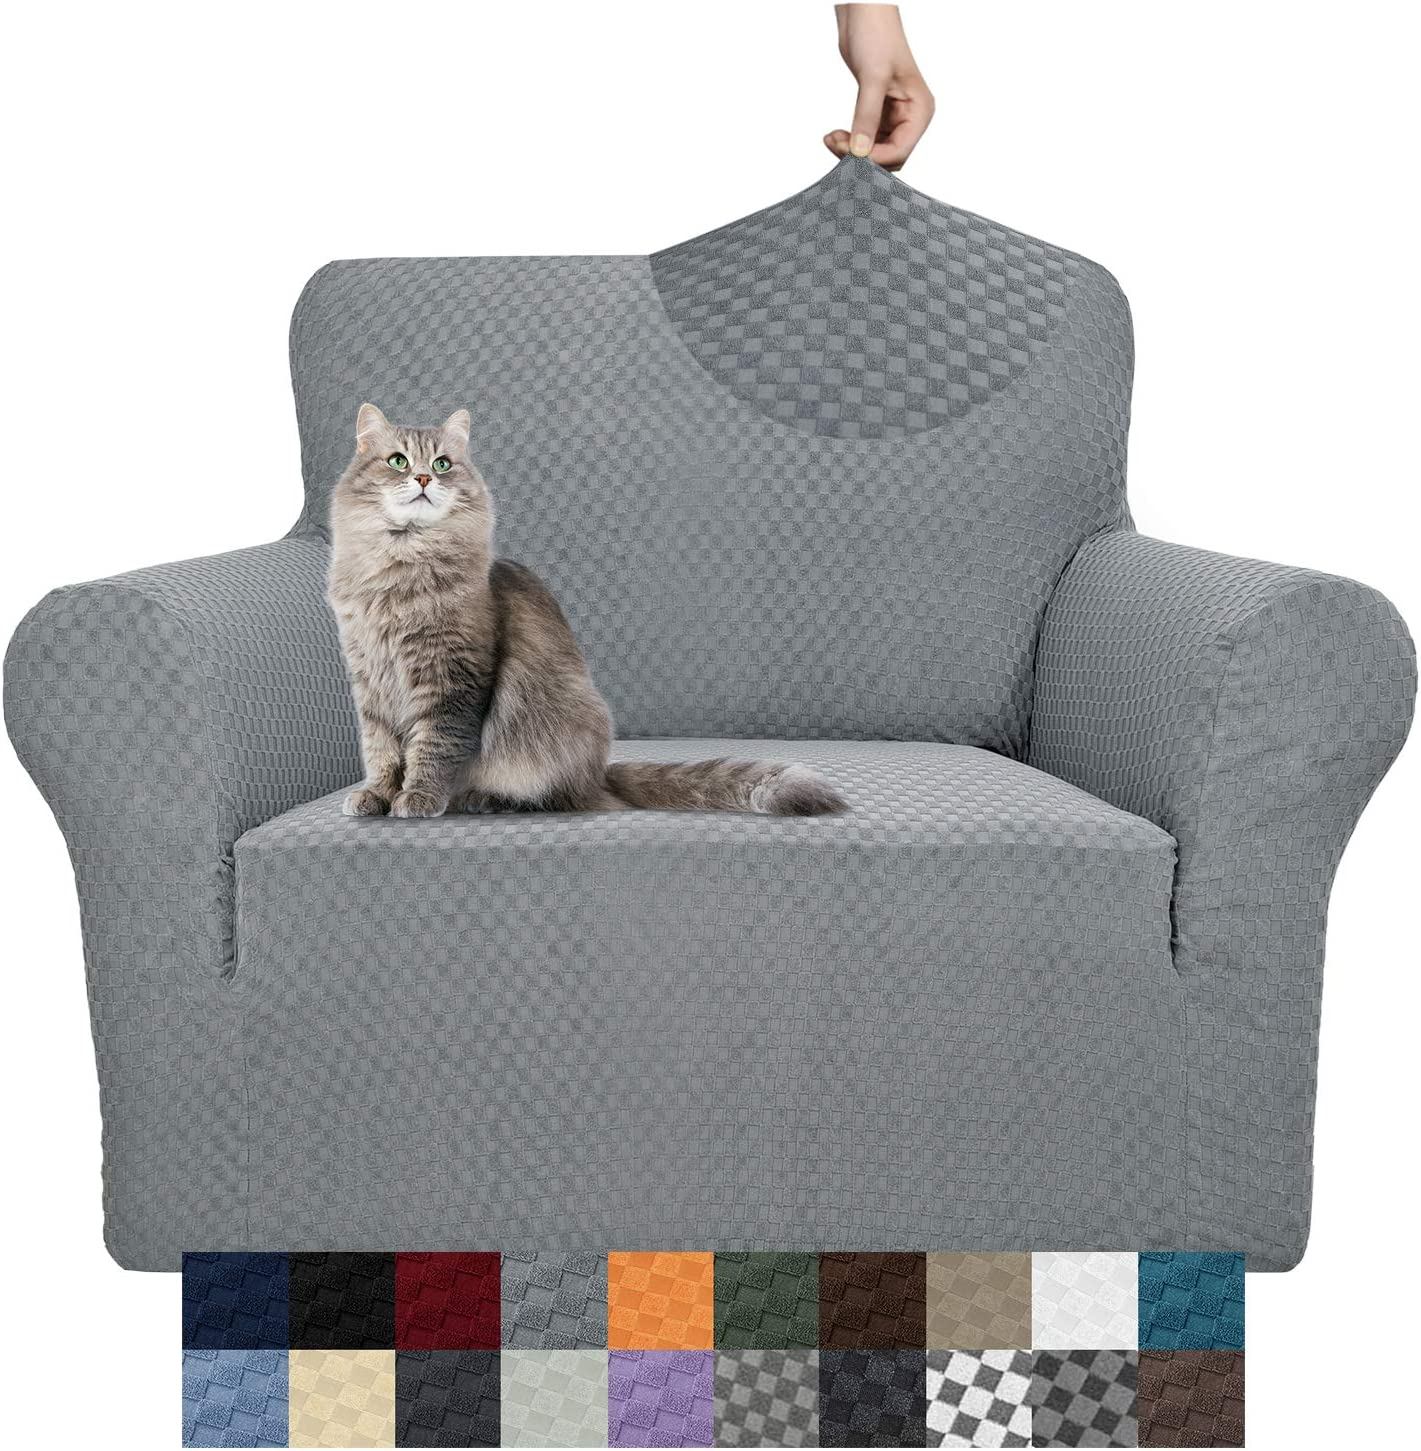 YEMYHOM Couch Los Angeles Mall Cover Sale Latest Jacquard Cha Sofa Stretch High Design